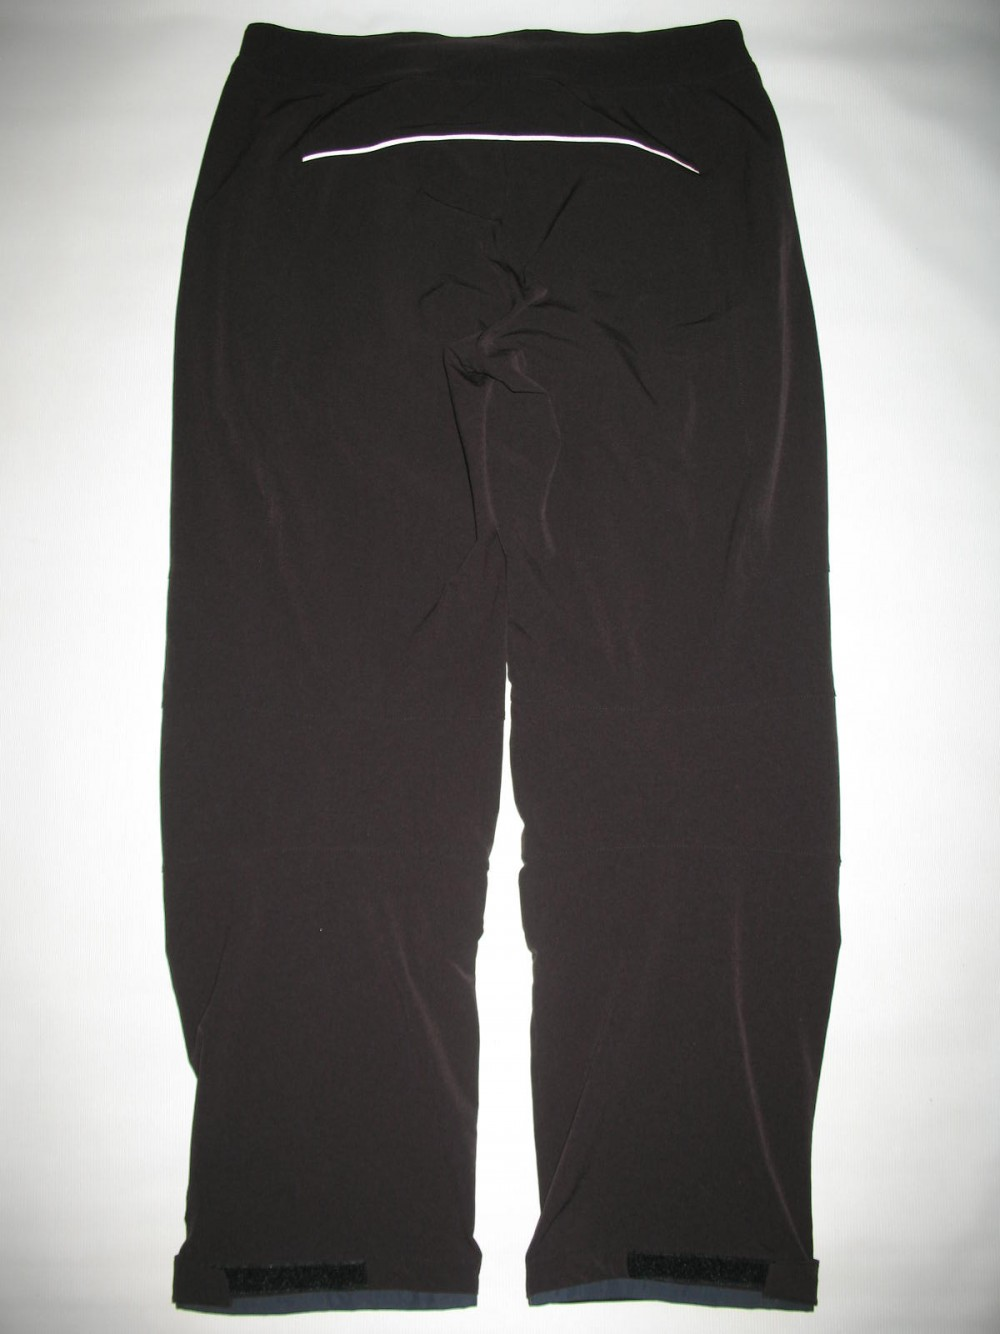 Штаны ADIDAS windstopper softshell pants (размер 50/L) - 1